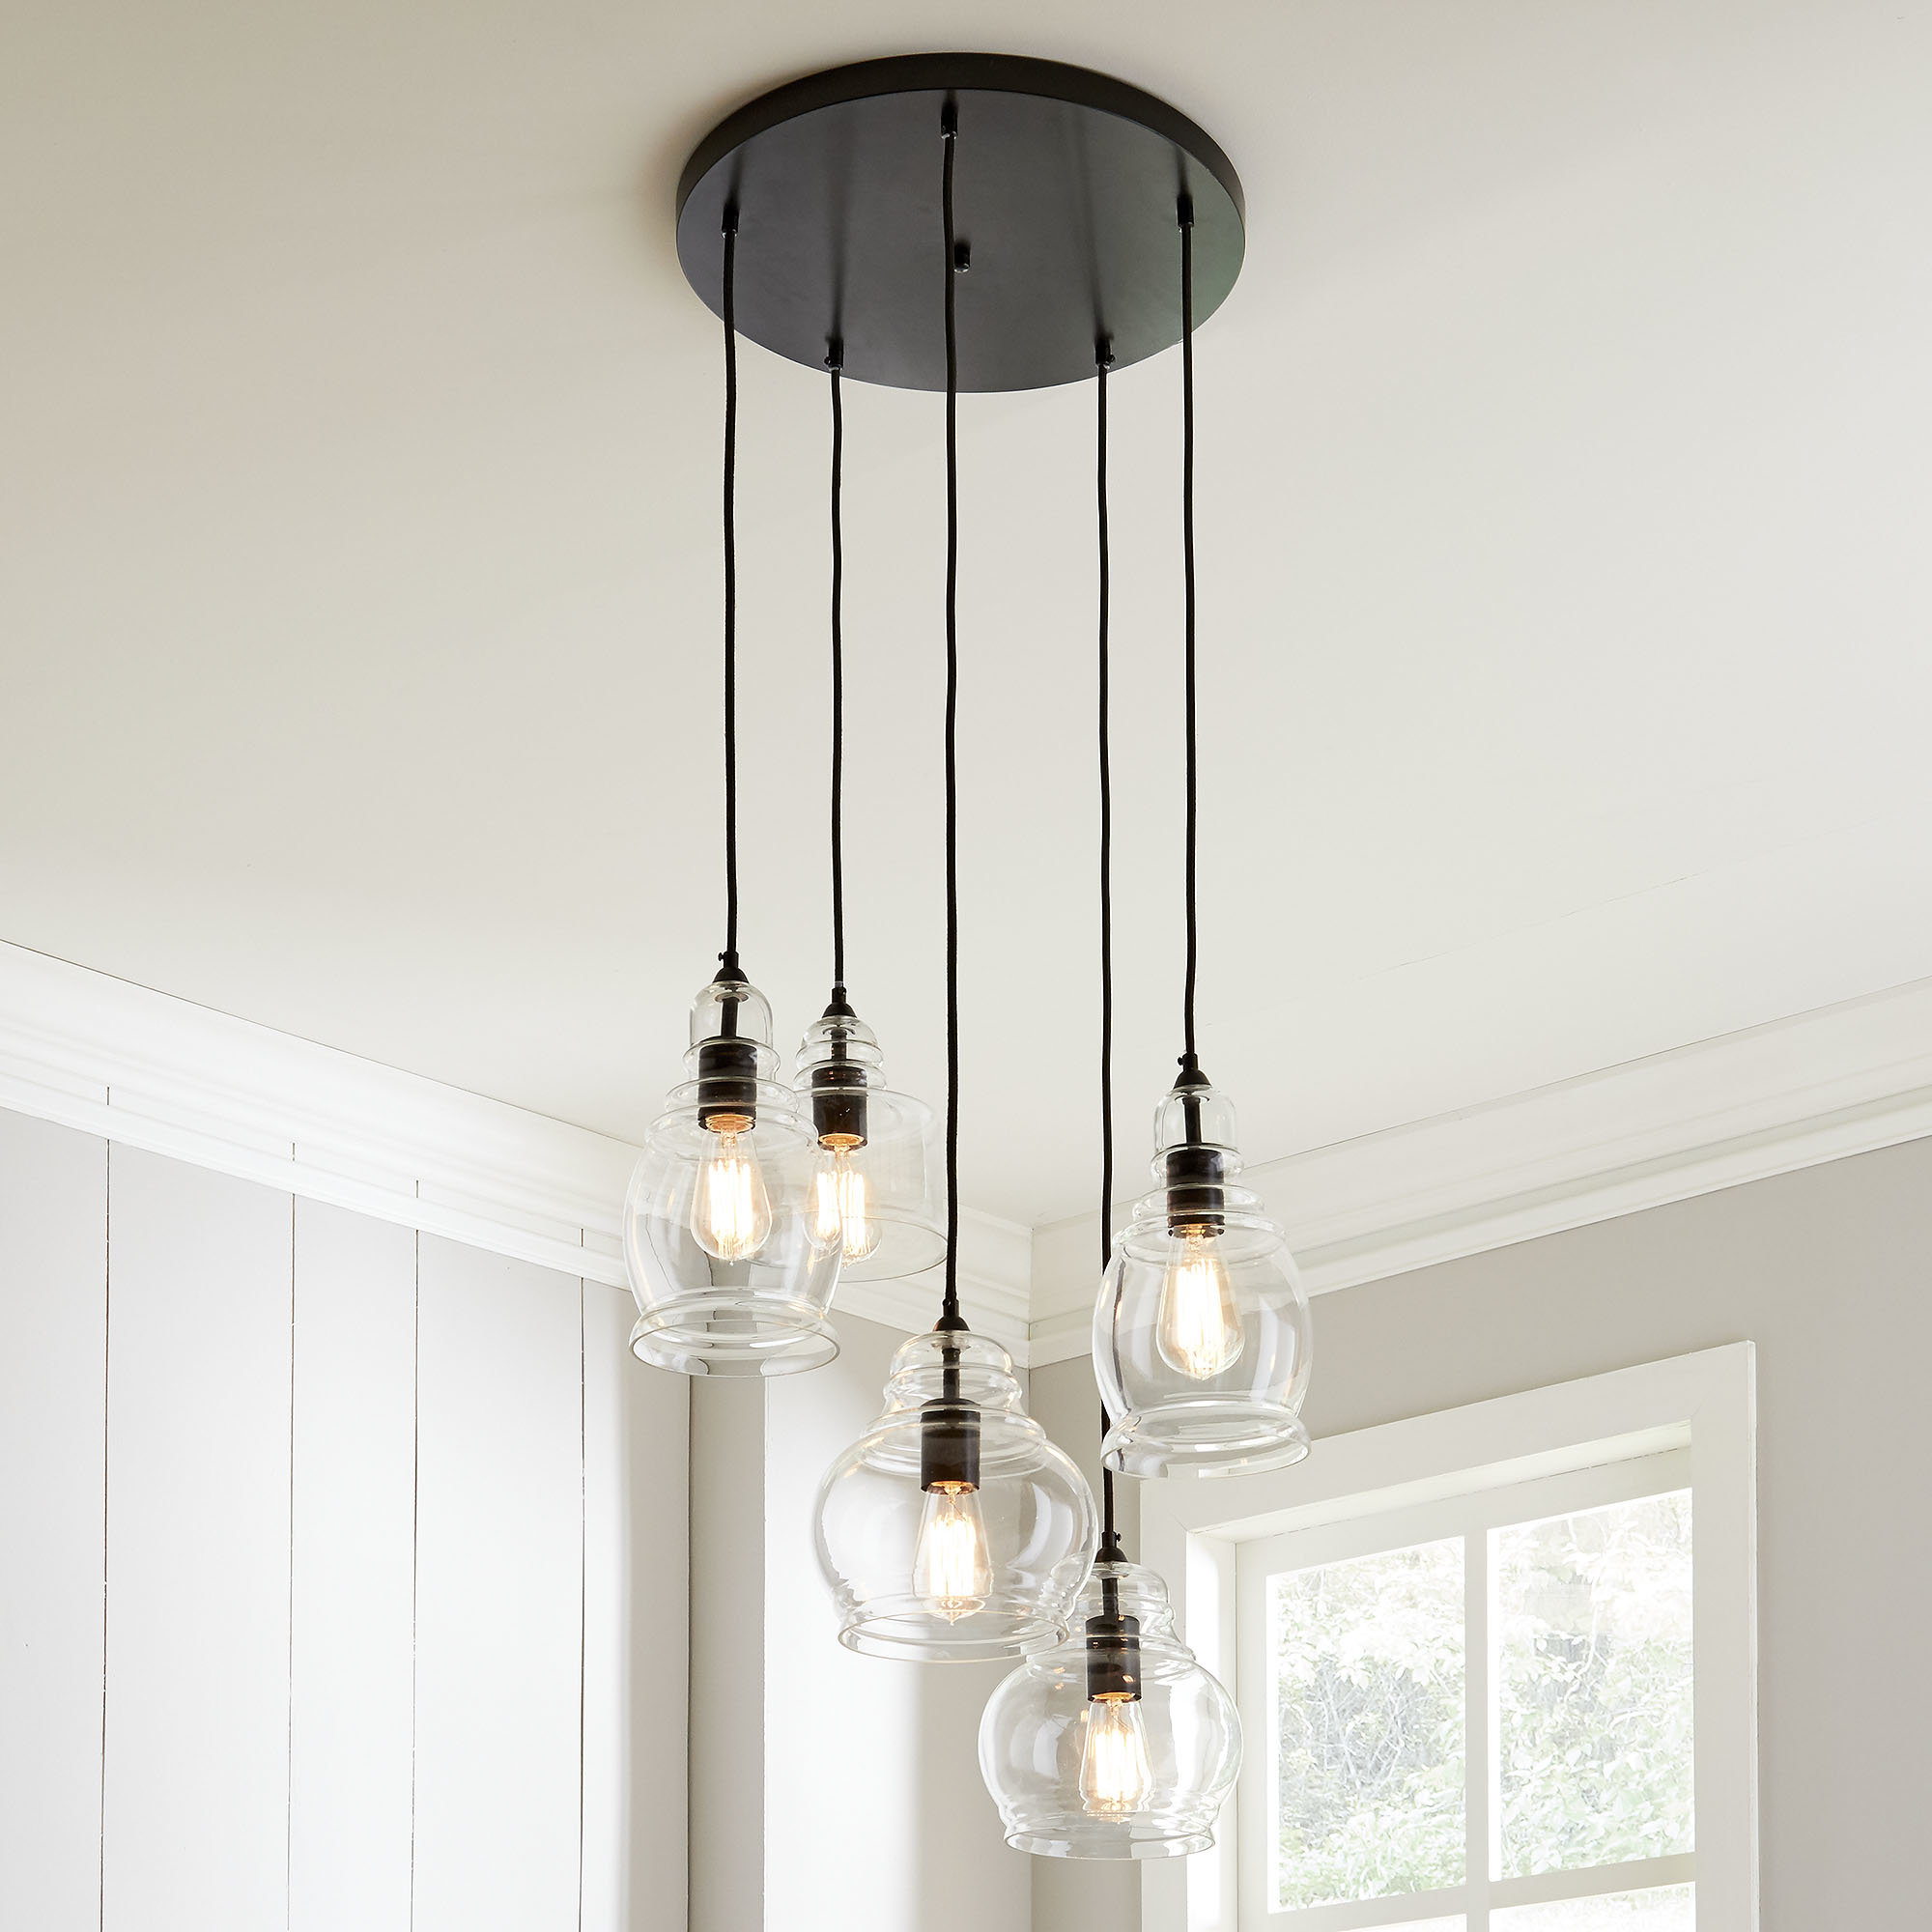 Schutt 5 Light Cluster Pendants For Latest 4 – 6 Light Cluster Pendant Lighting You'll Love In  (View 10 of 20)